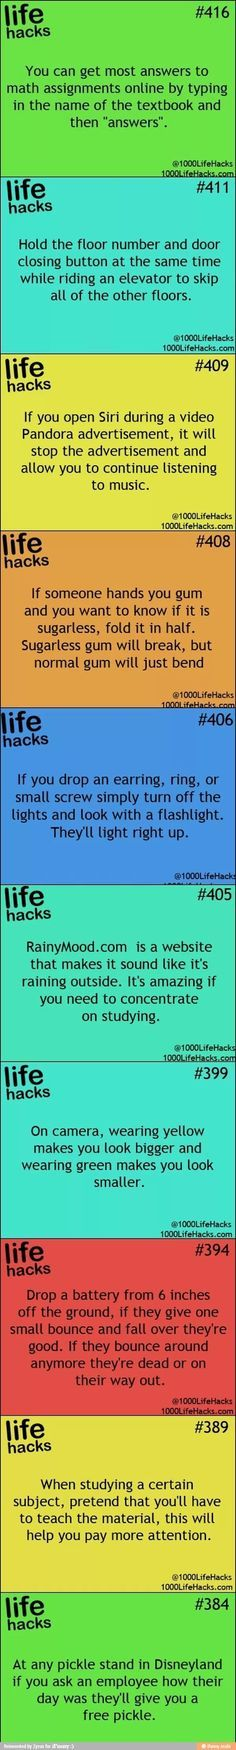 Life hacks- not sure how legit this is lol but neat, if so! Hack My Life, Simple Life Hacks, Useful Life Hacks, Way Of Life, Life Is Good, It Wissen, 1000 Lifehacks, Info Board, Making Life Easier